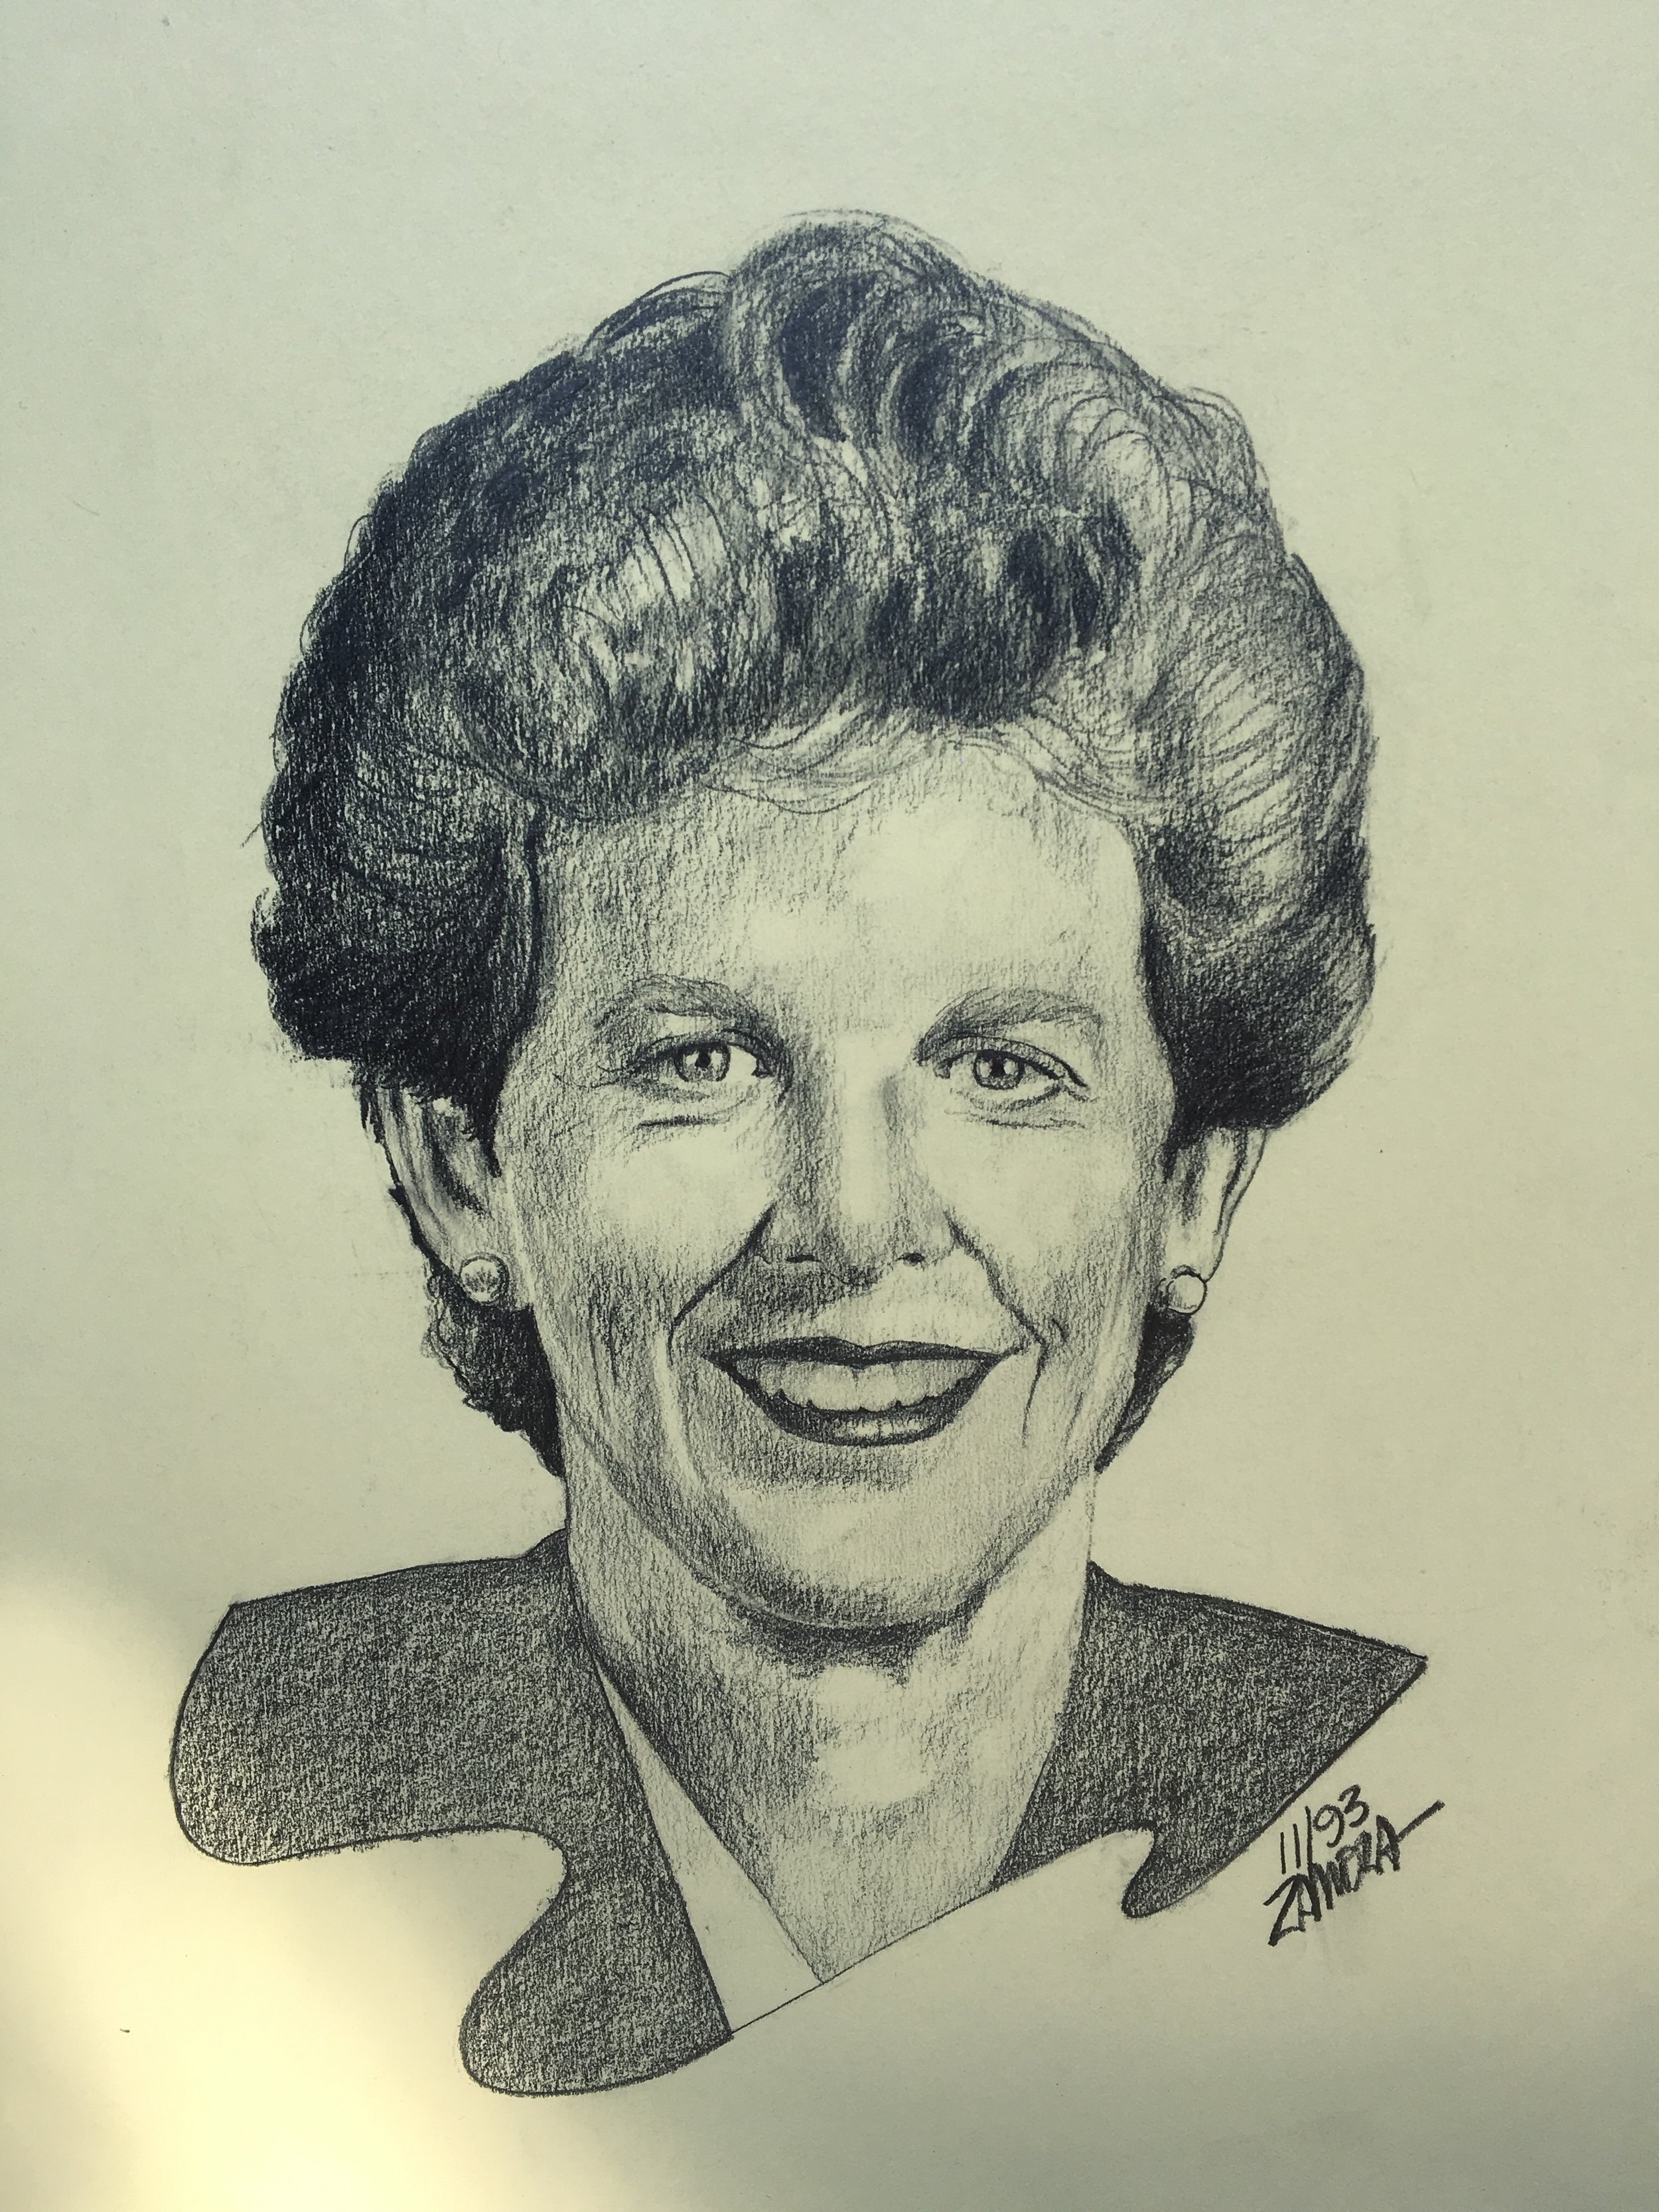 """Zamora, Gil.  Susan Hammer, Mayor of San Jose.  1993. Graphite on yellow paper, 12"""" x 17"""". Private collection."""